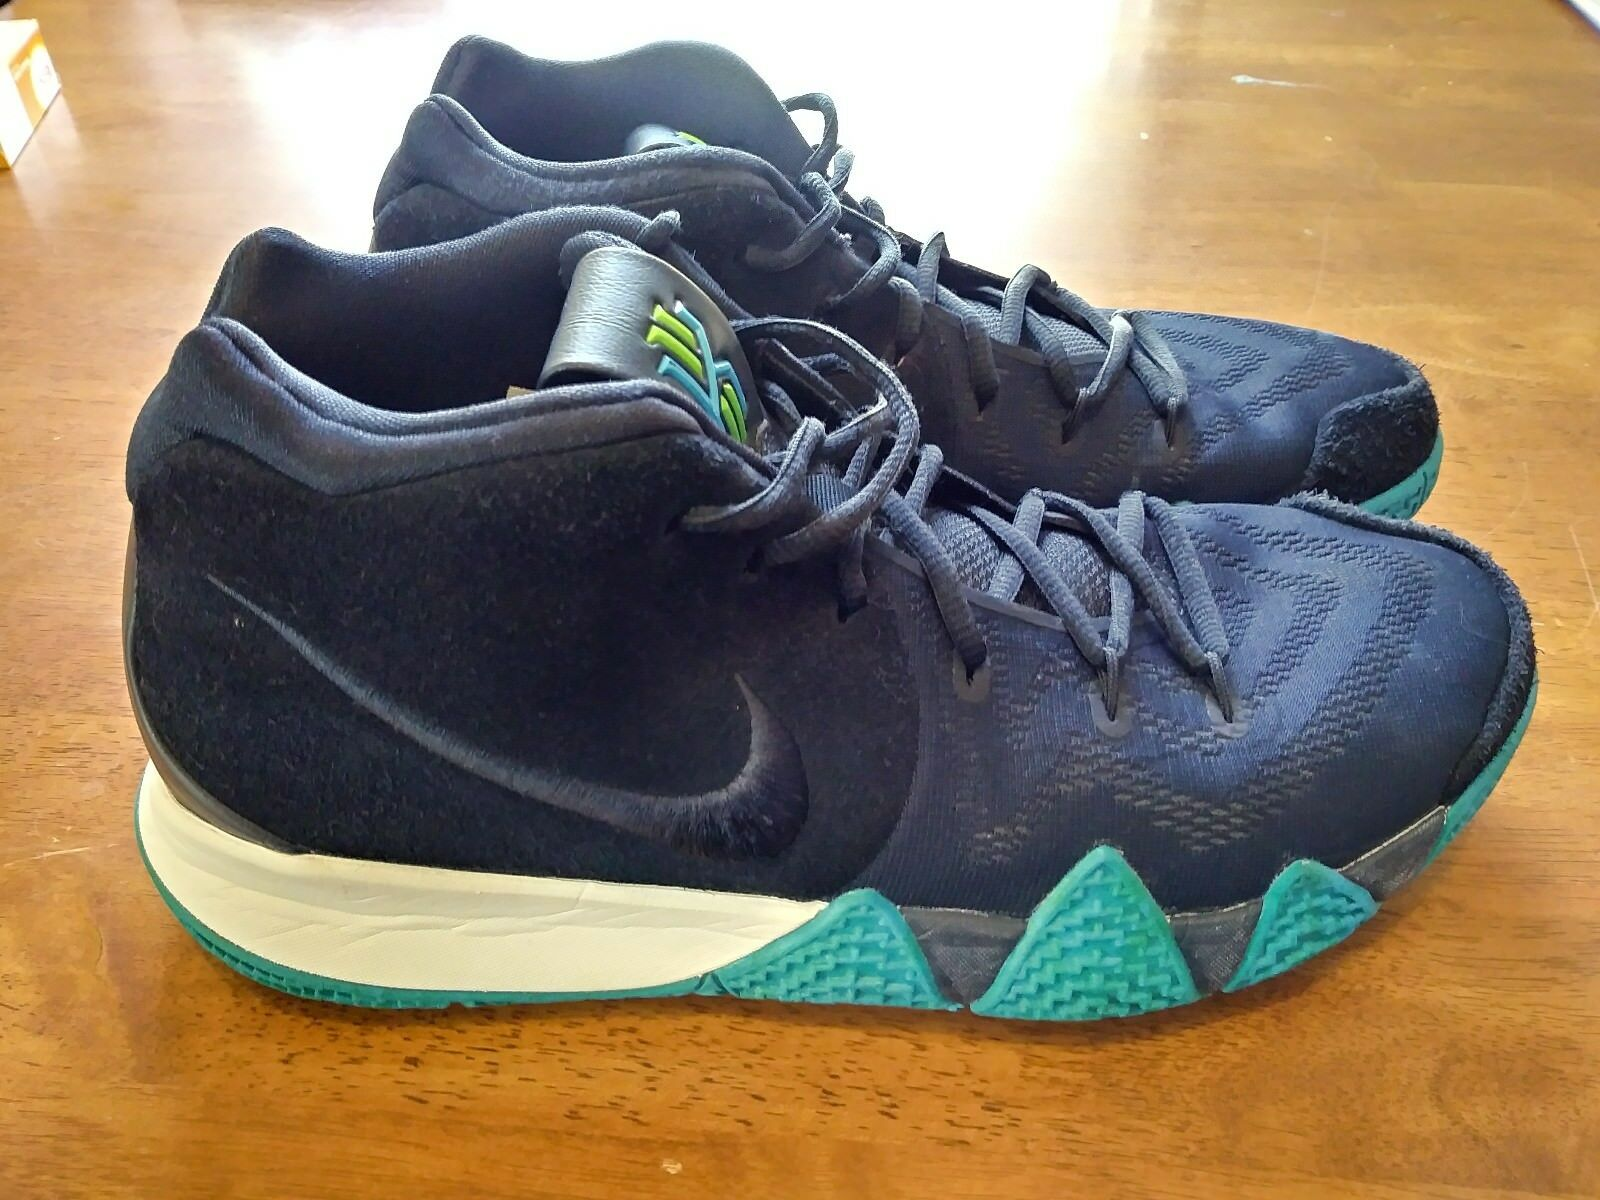 Nike Kryrie 4 basketball shoes  Cheap and fashionable